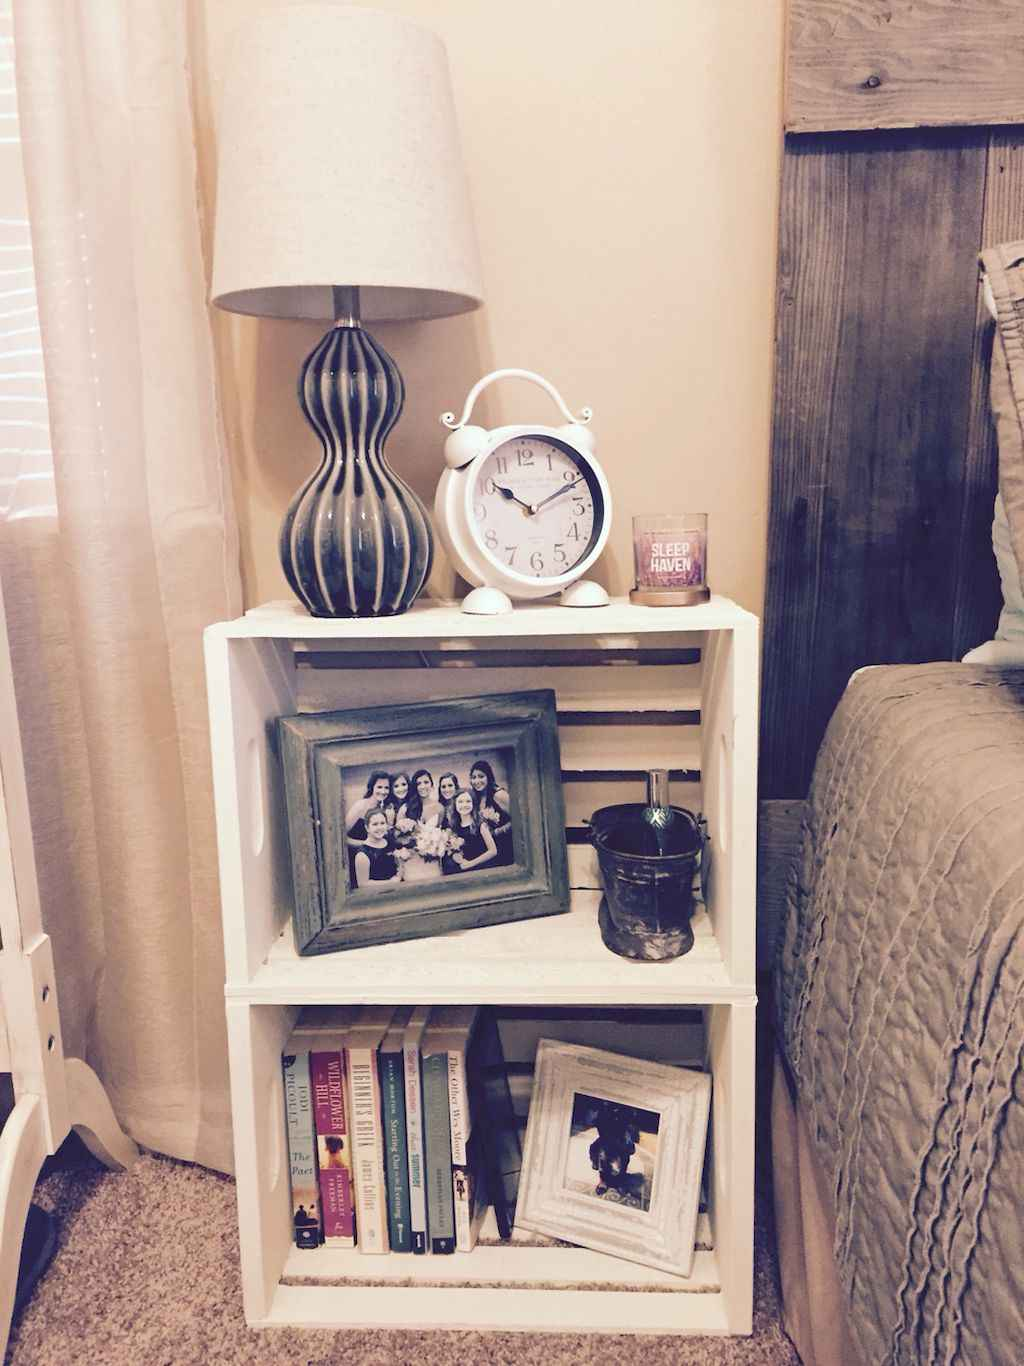 Couples first apartment decorating ideas (102)